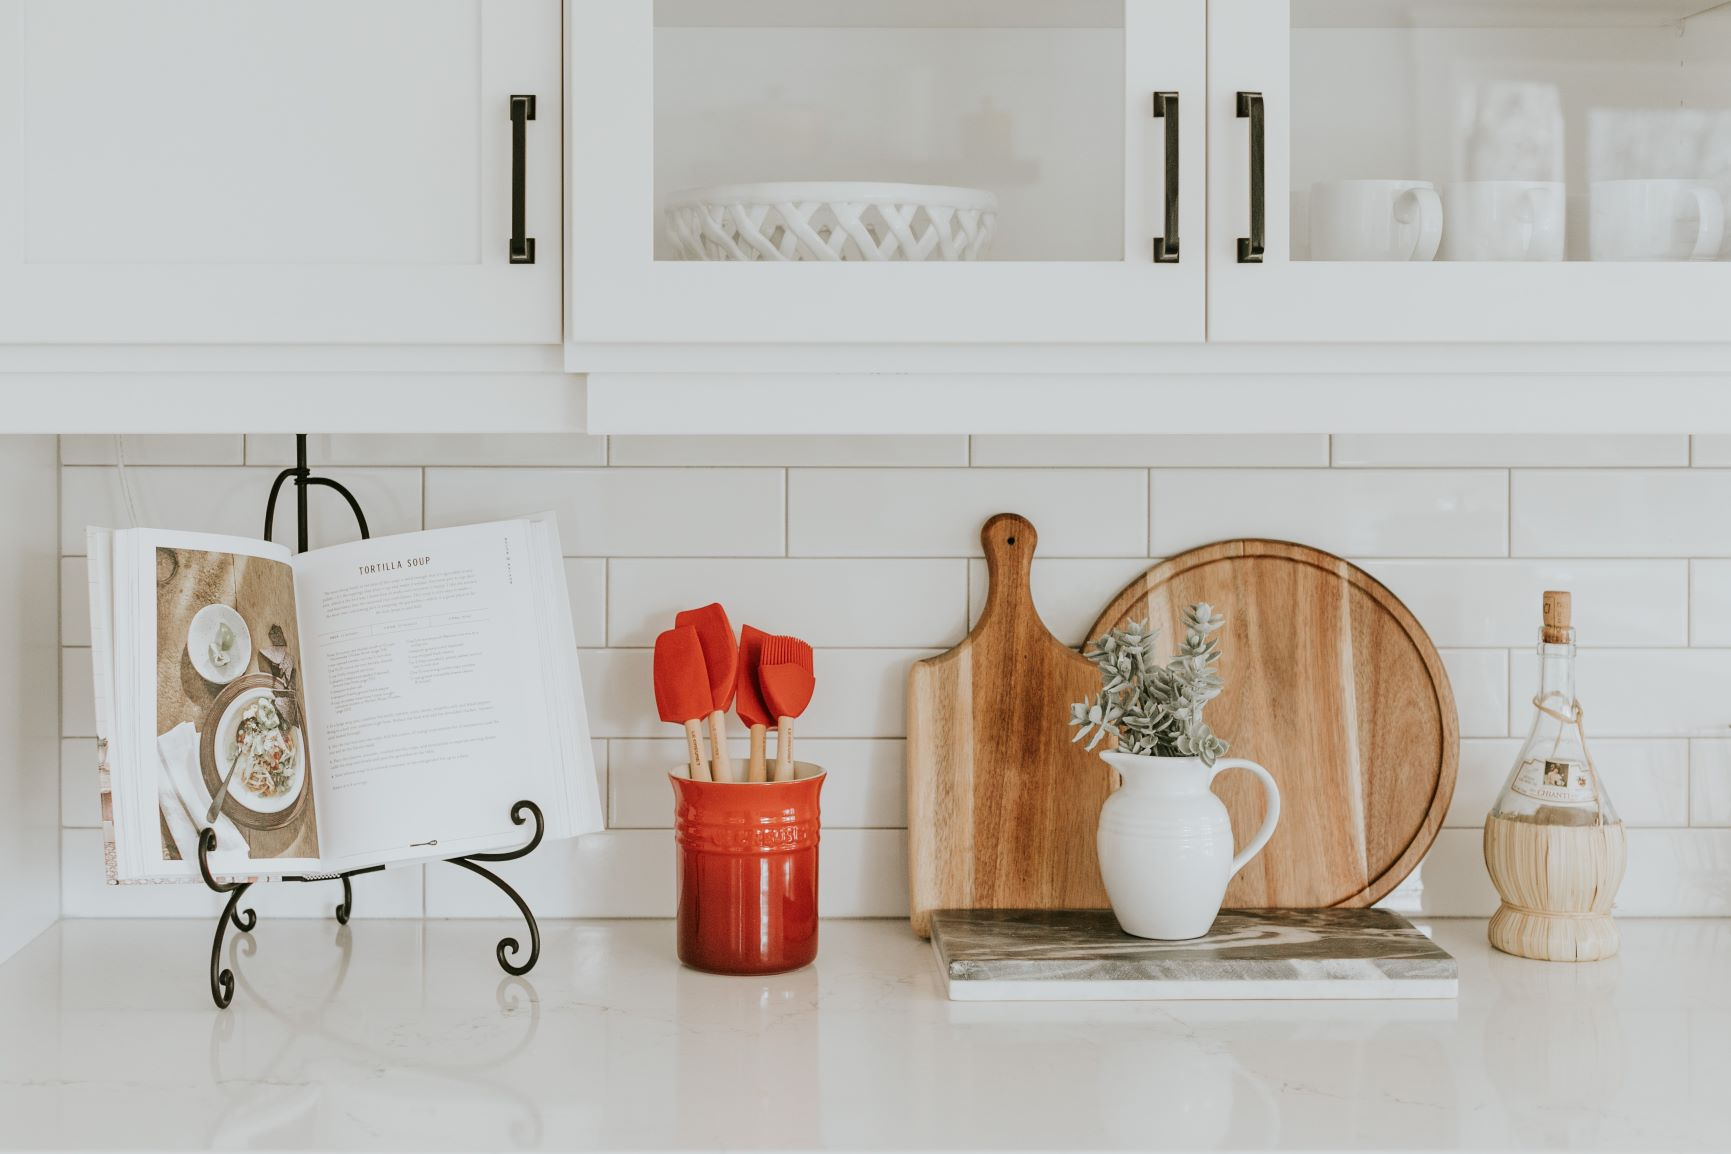 Kitchen Backsplash Trends 2020.2020 Kitchen Backsplash Trends